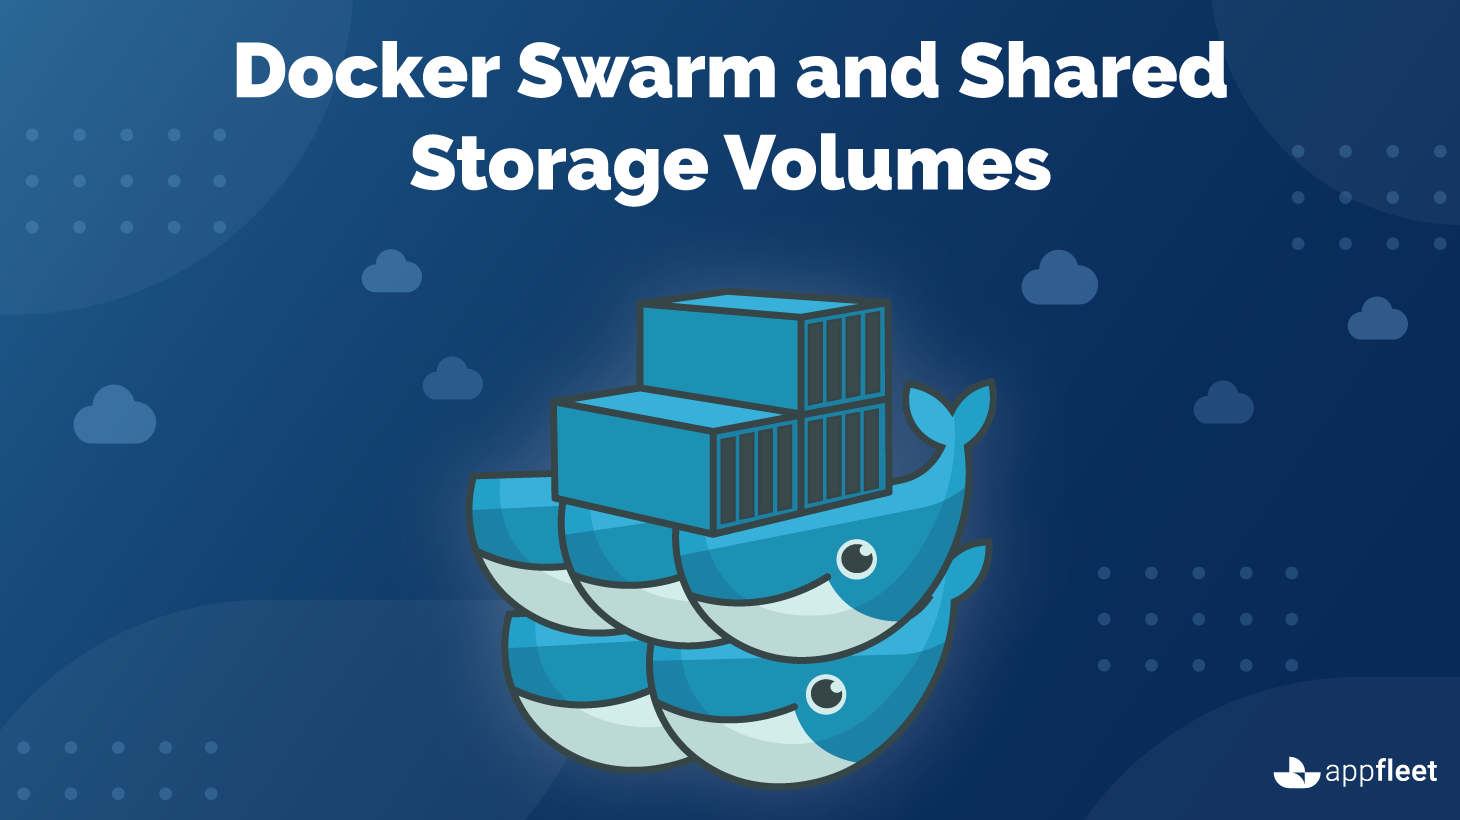 Docker Swarm and Shared Storage Volumes